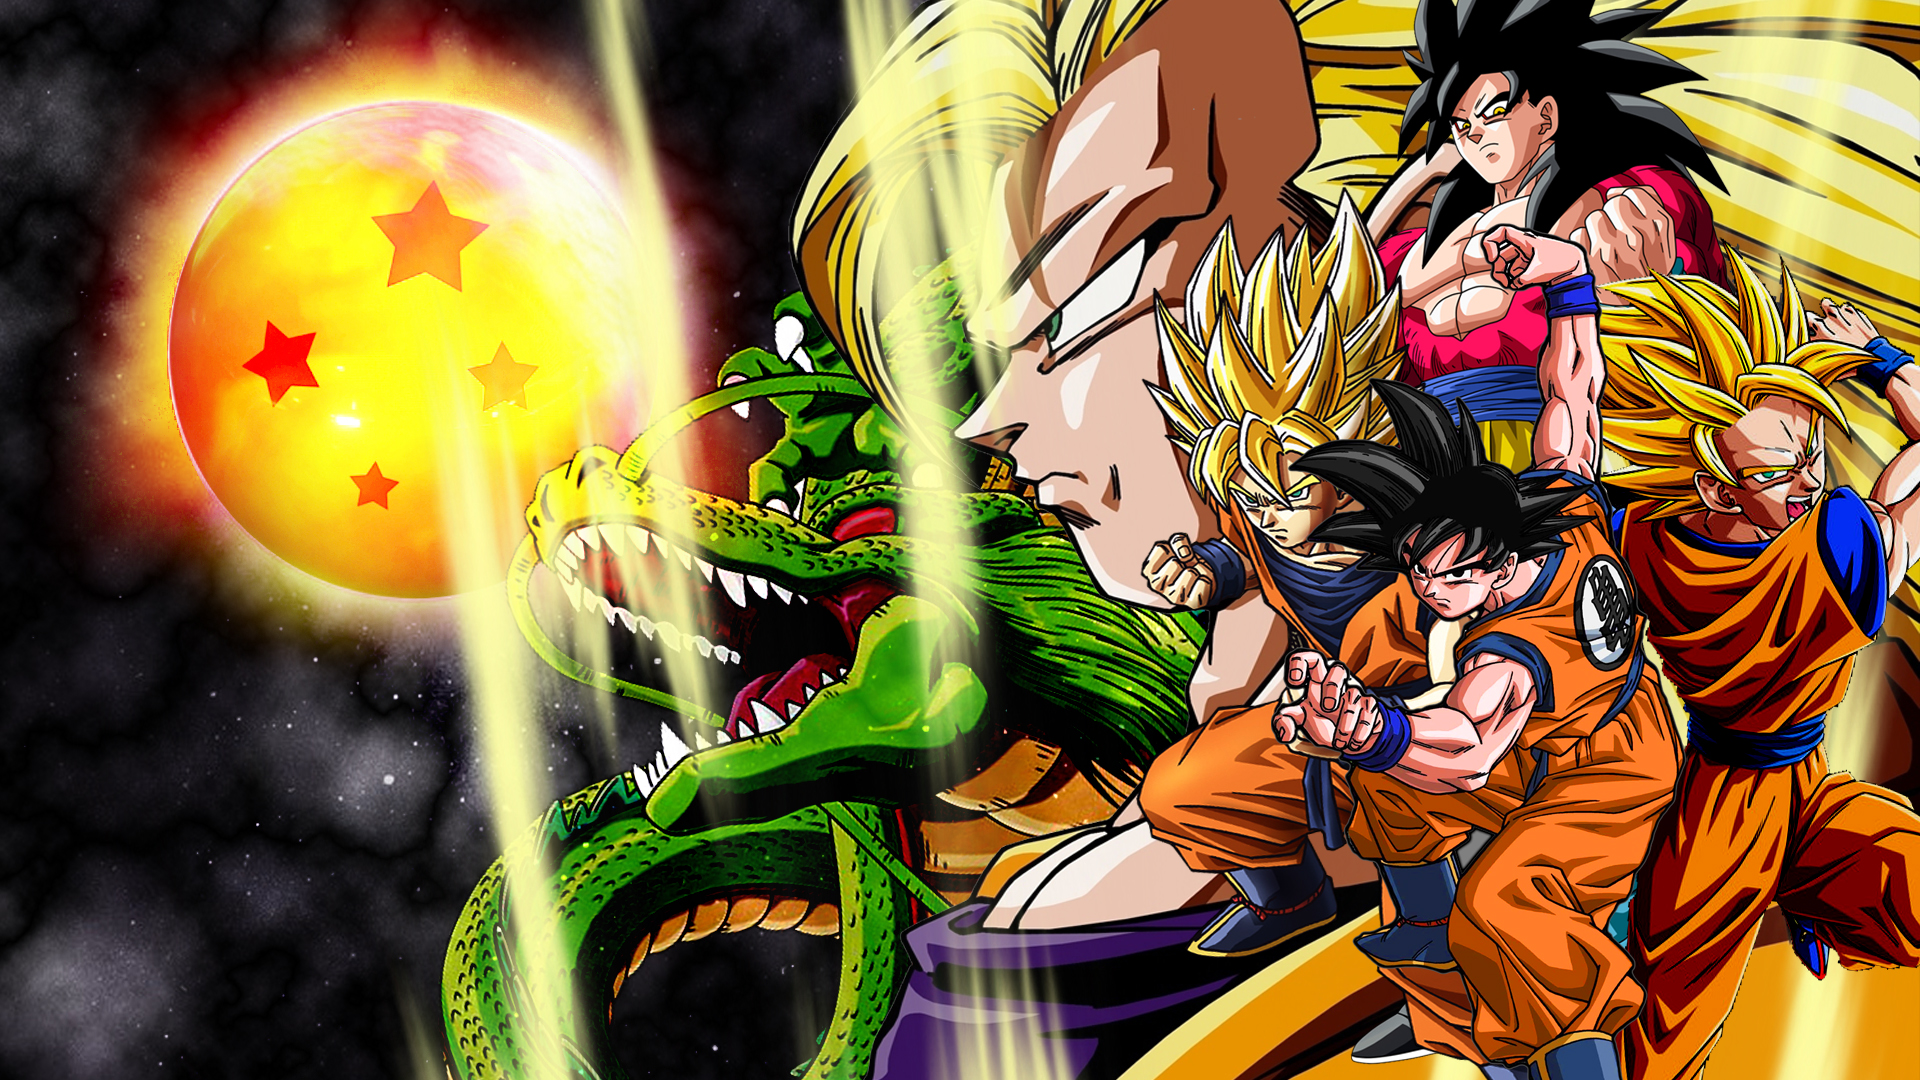 Free Download 40 Best Goku Wallpaper Hd For Pc Dragon Ball Z